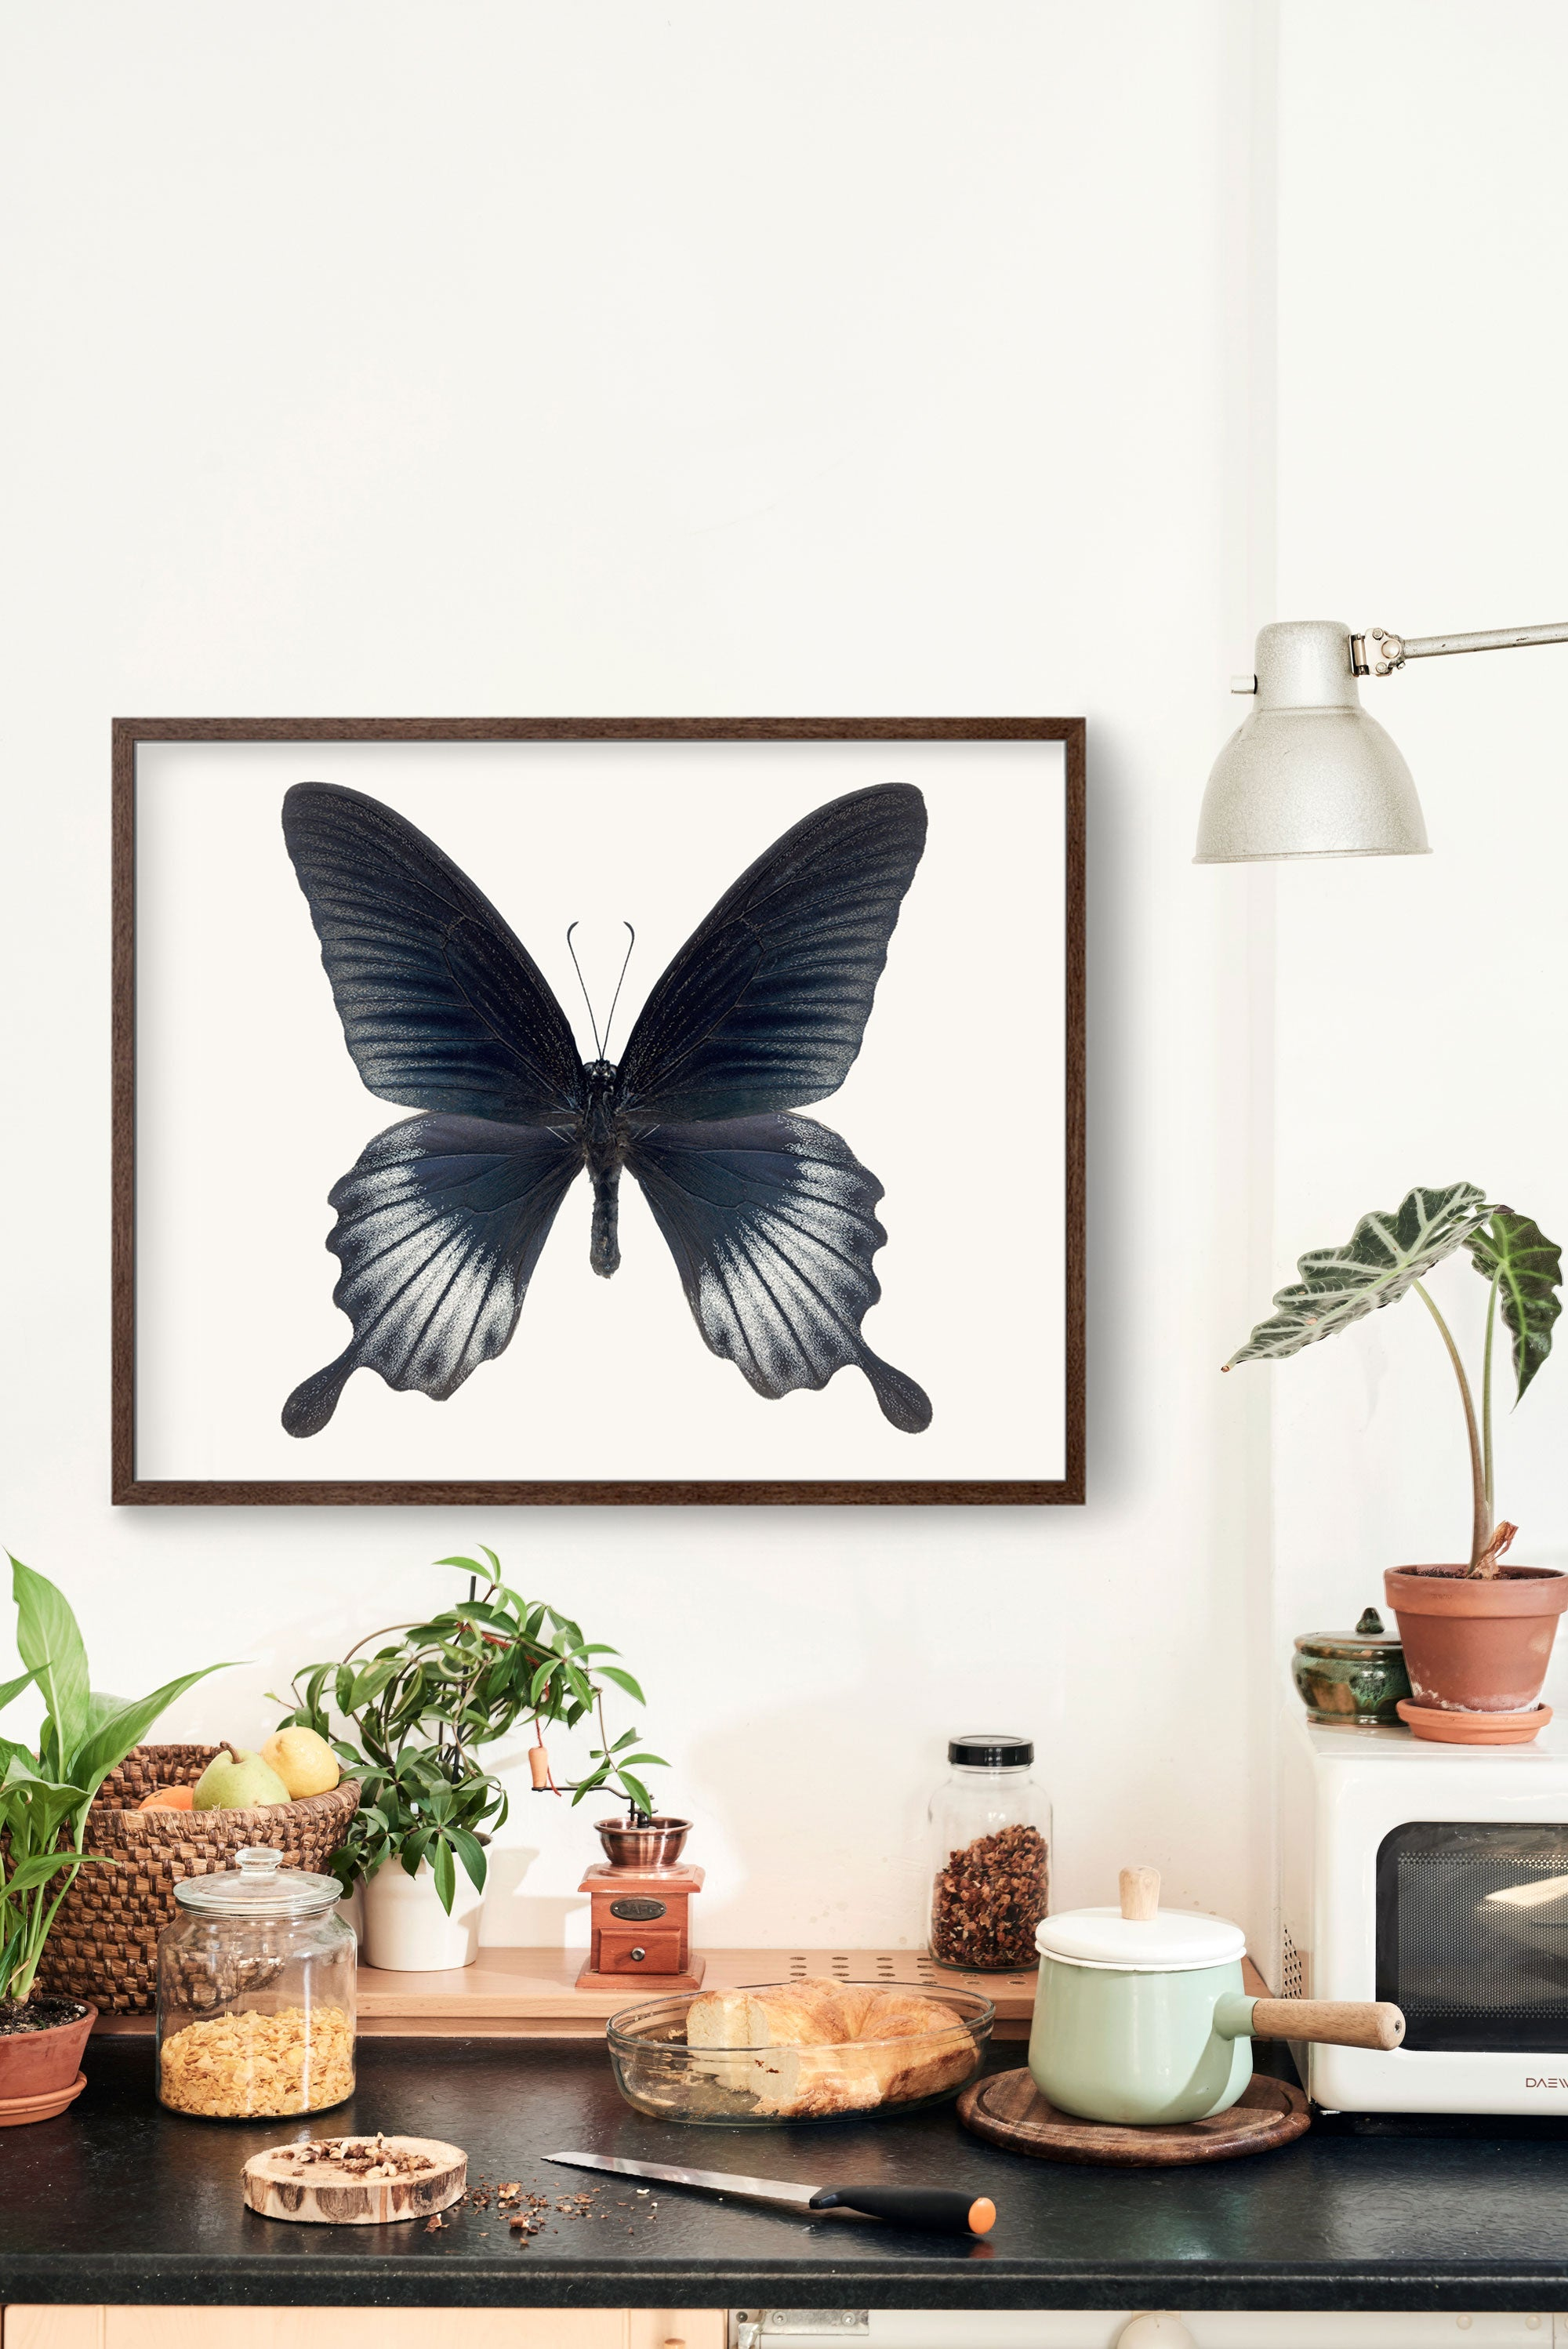 Butterfly No. 4 - the Asian Swallowtail Butterfly